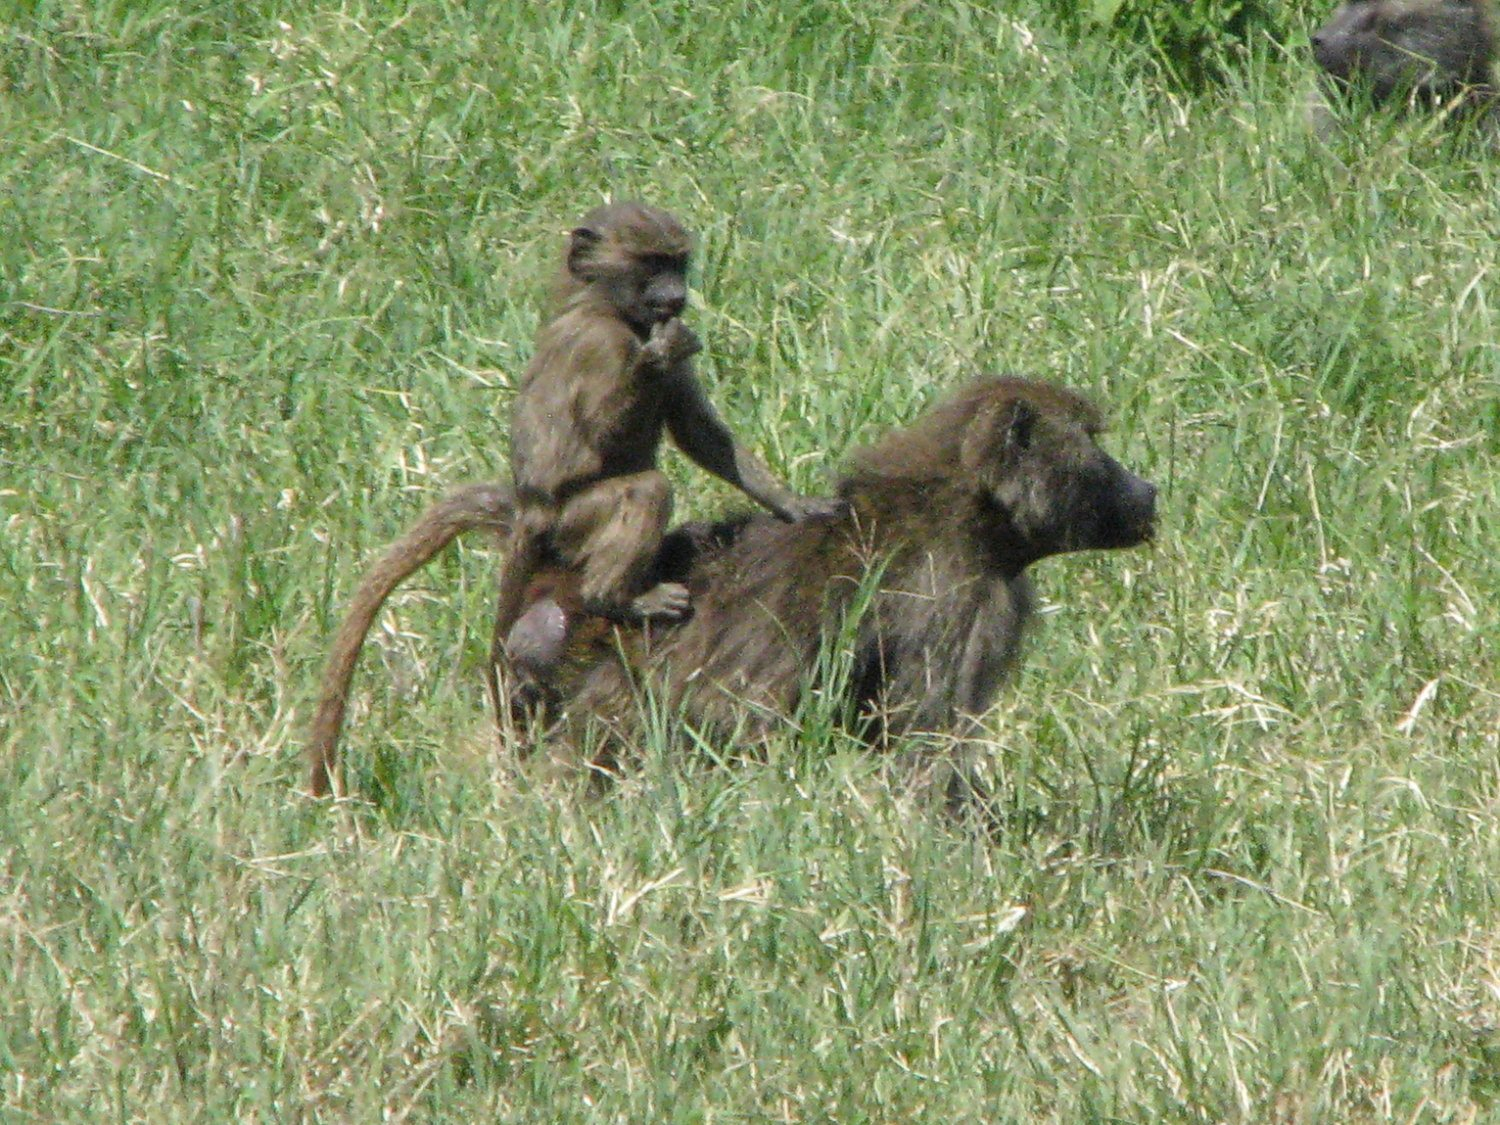 mother and baby baboon walking in grasslands of Kenya